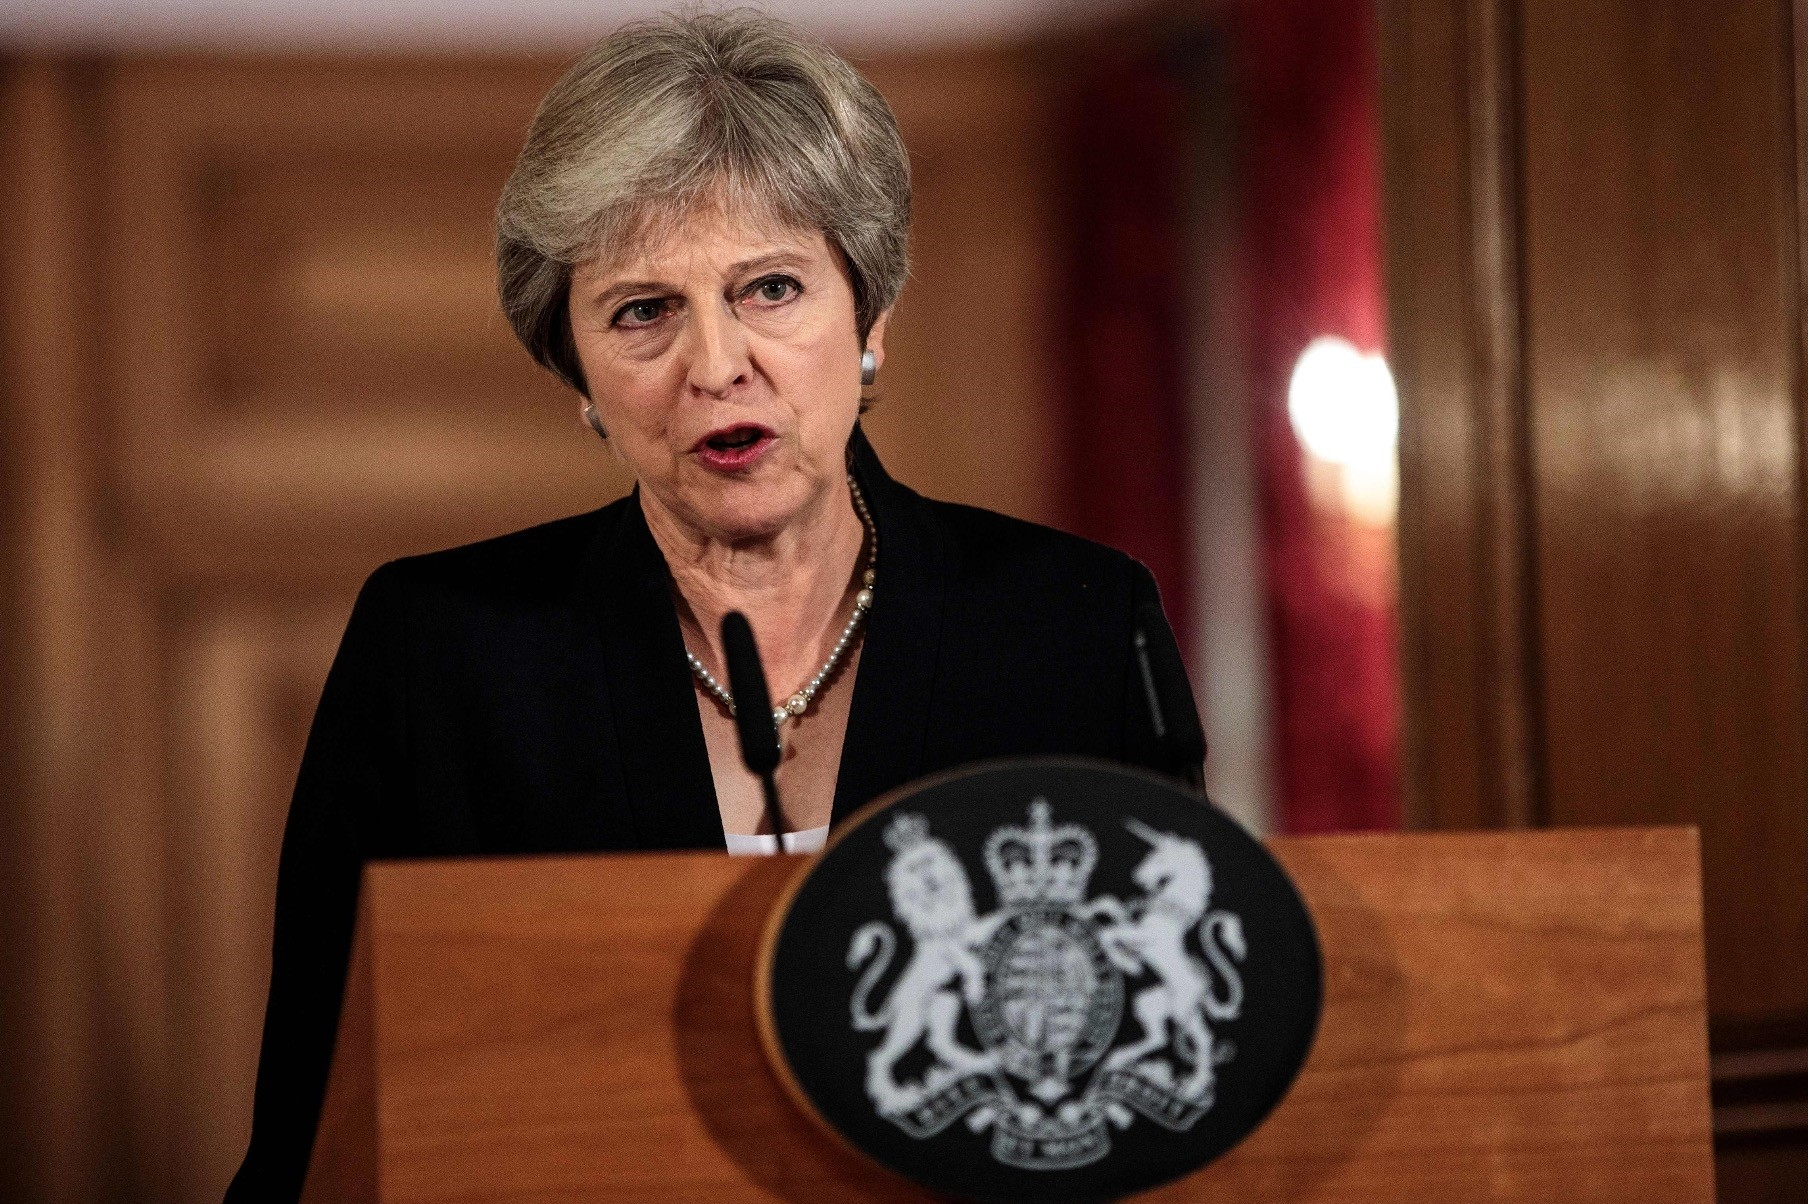 Britainu2019s Prime Minister Theresa May makes a statement on the Brexit negotiations at No. 10 Downing Street, central London, Sept. 21.